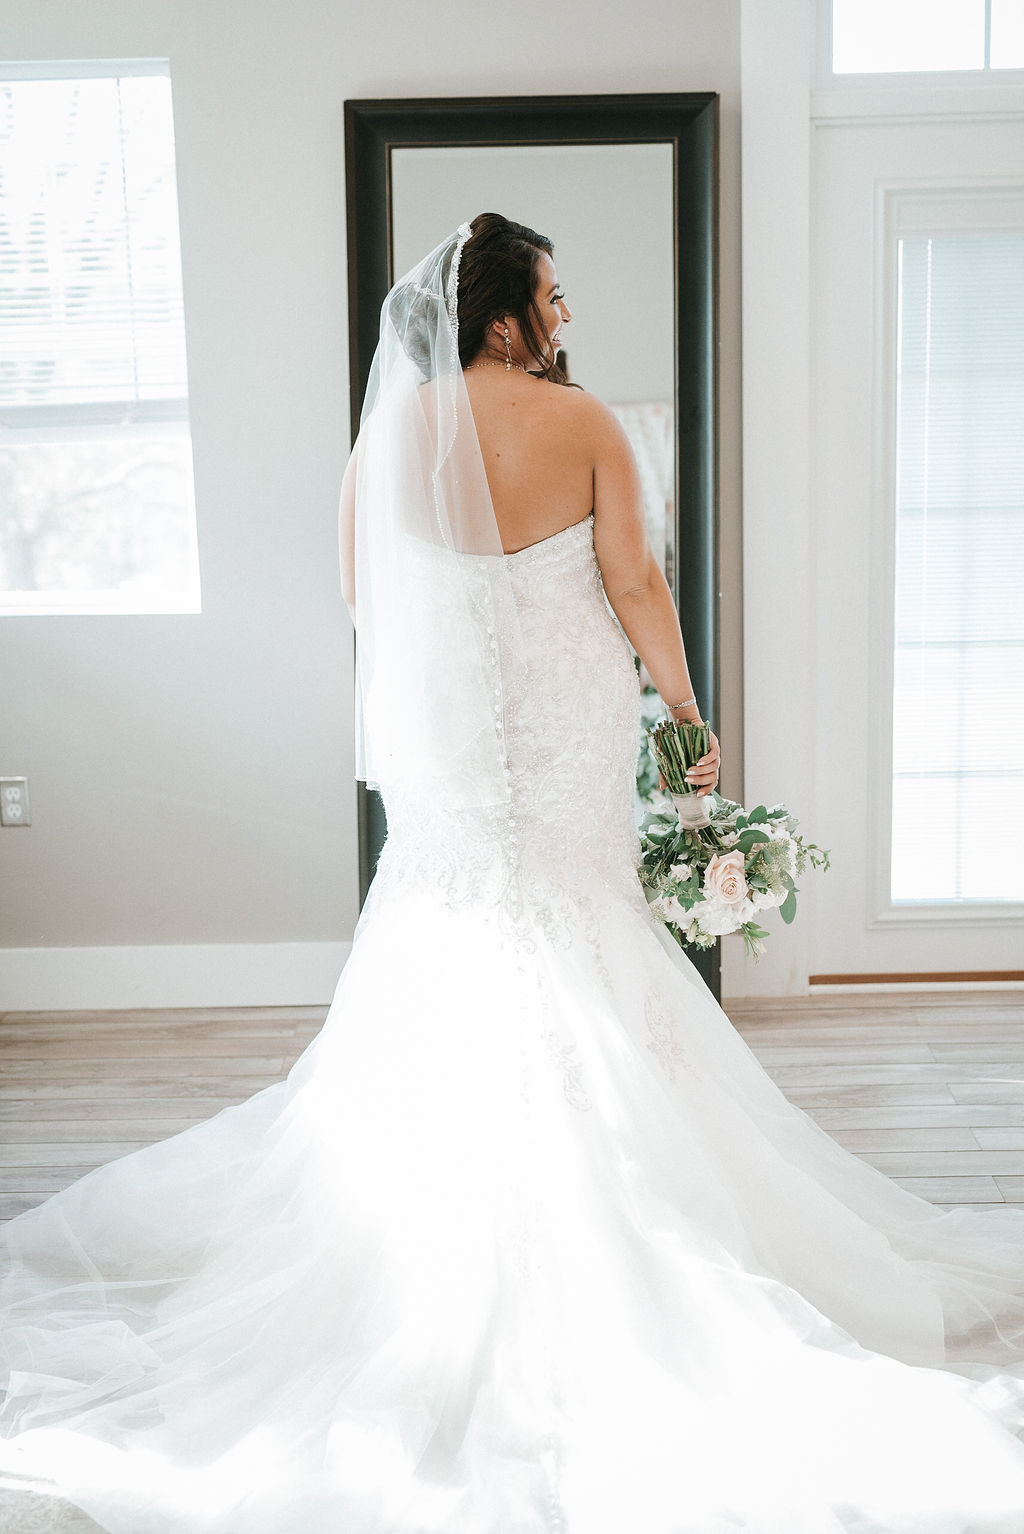 The Back of the Bride in her Wedding dress at Blue Valley Vineyard